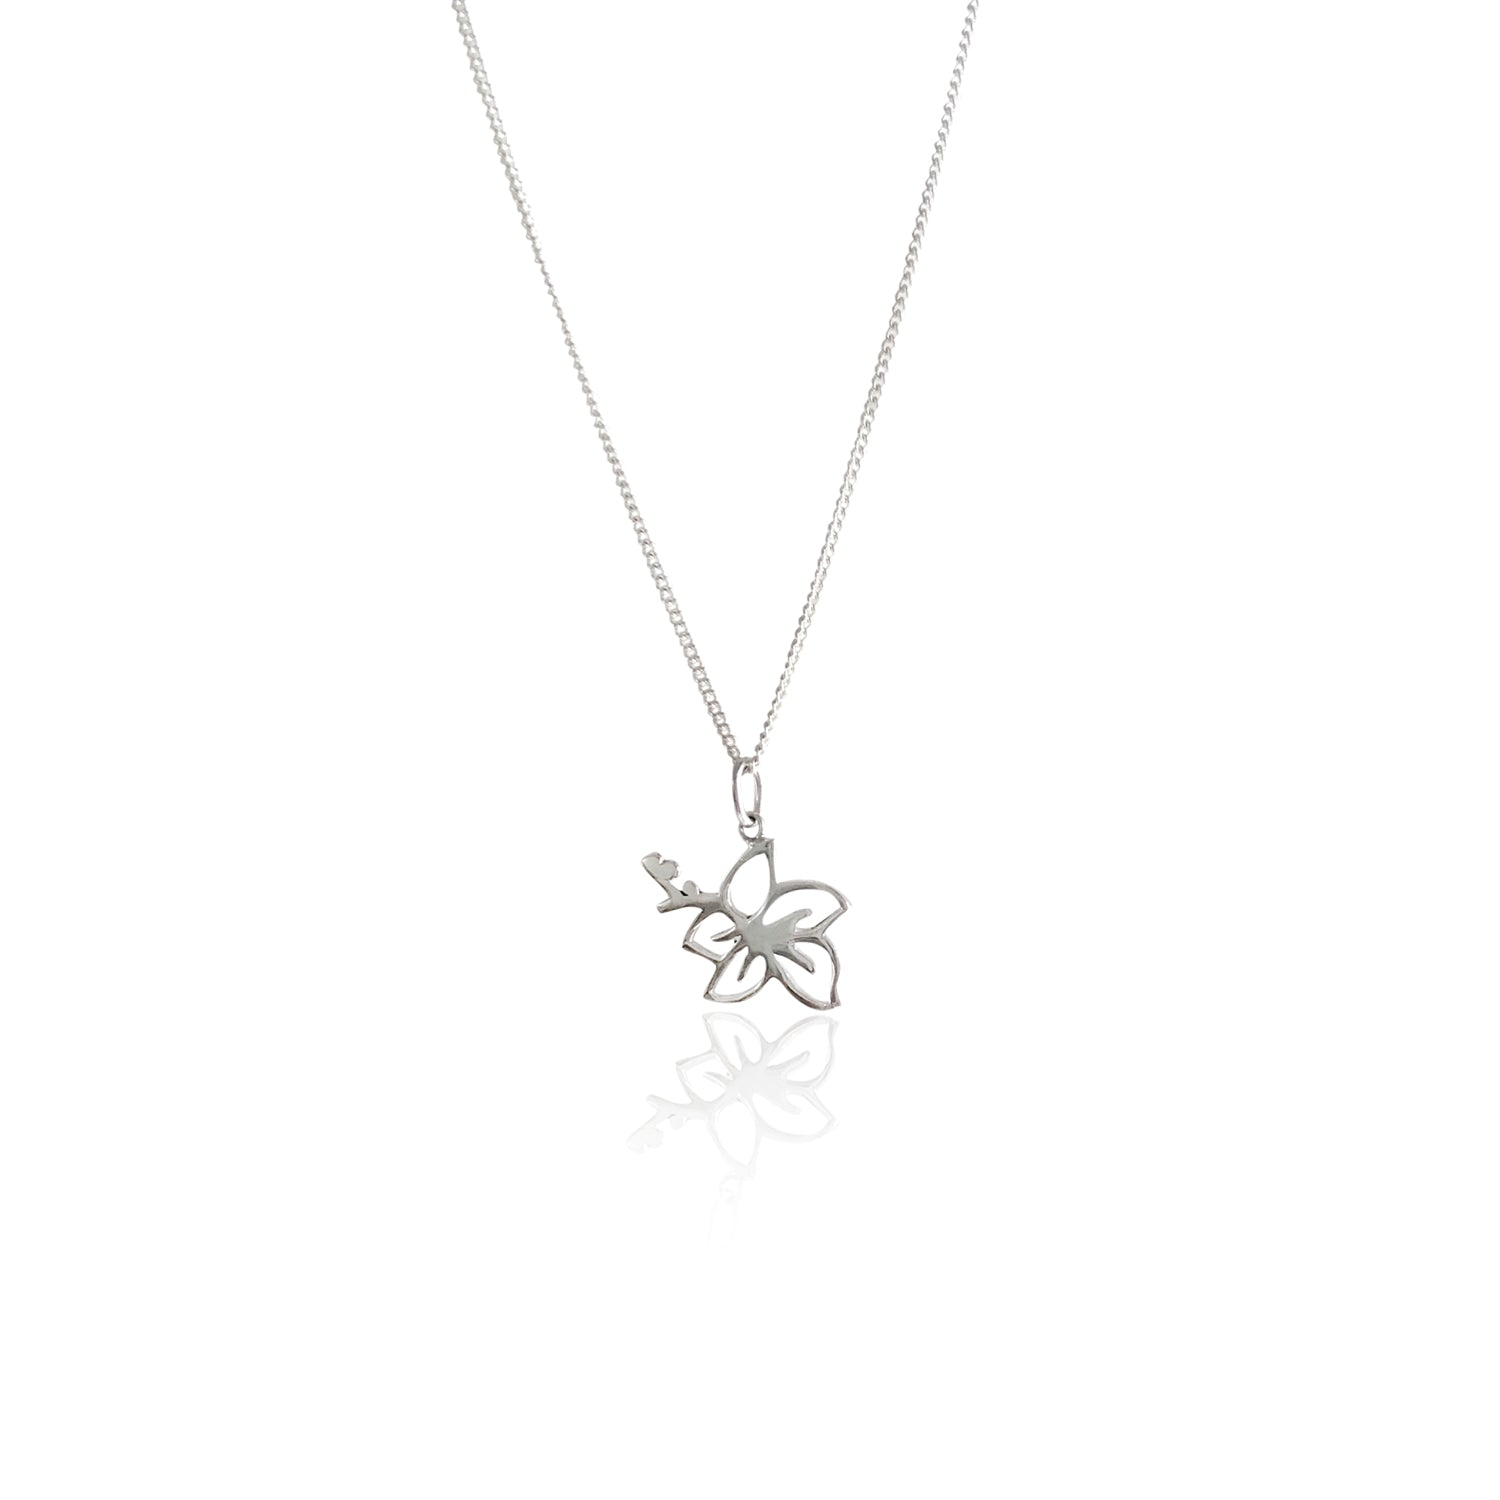 GOLDFISH KISS x LUNA & ROSE HIBISCUS FLOWER NECKLACE (Silver)